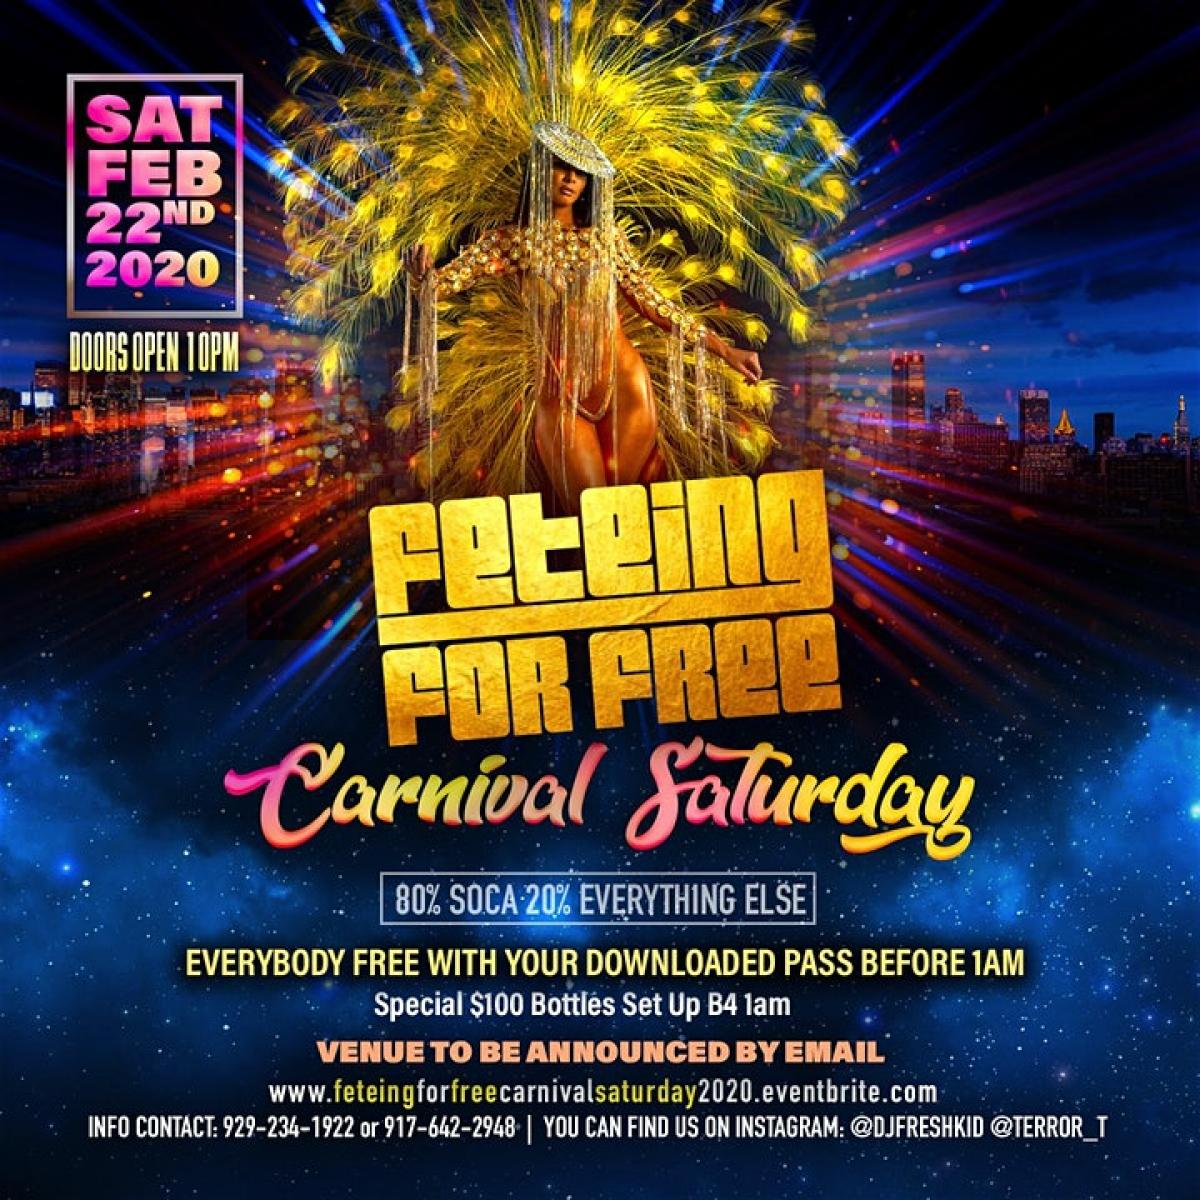 Feteing For Free Carnival Saturday flyer or graphic.